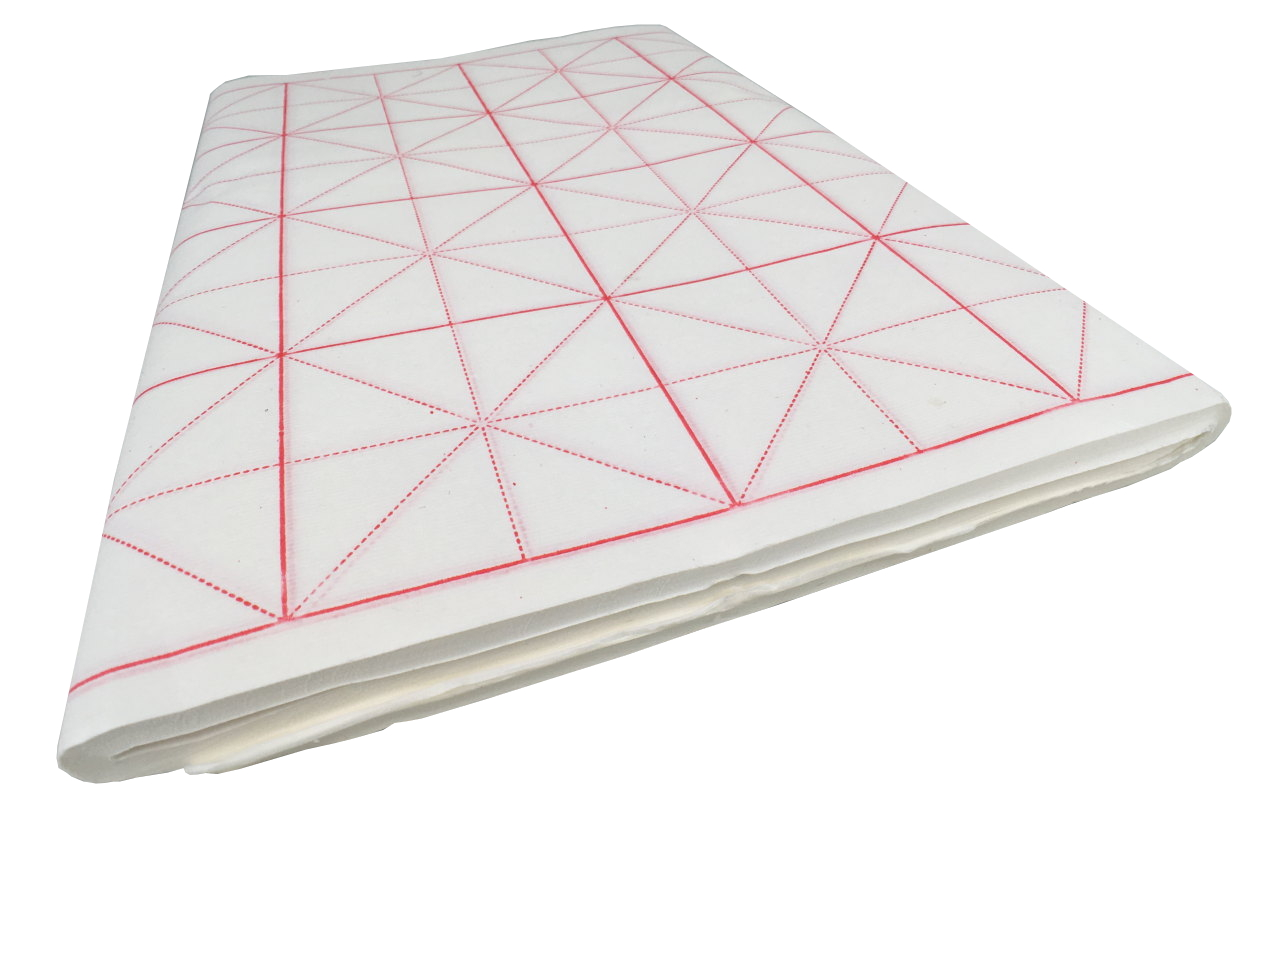 Xuan Paper With Squares For Calligraphy Practice 63 5 33